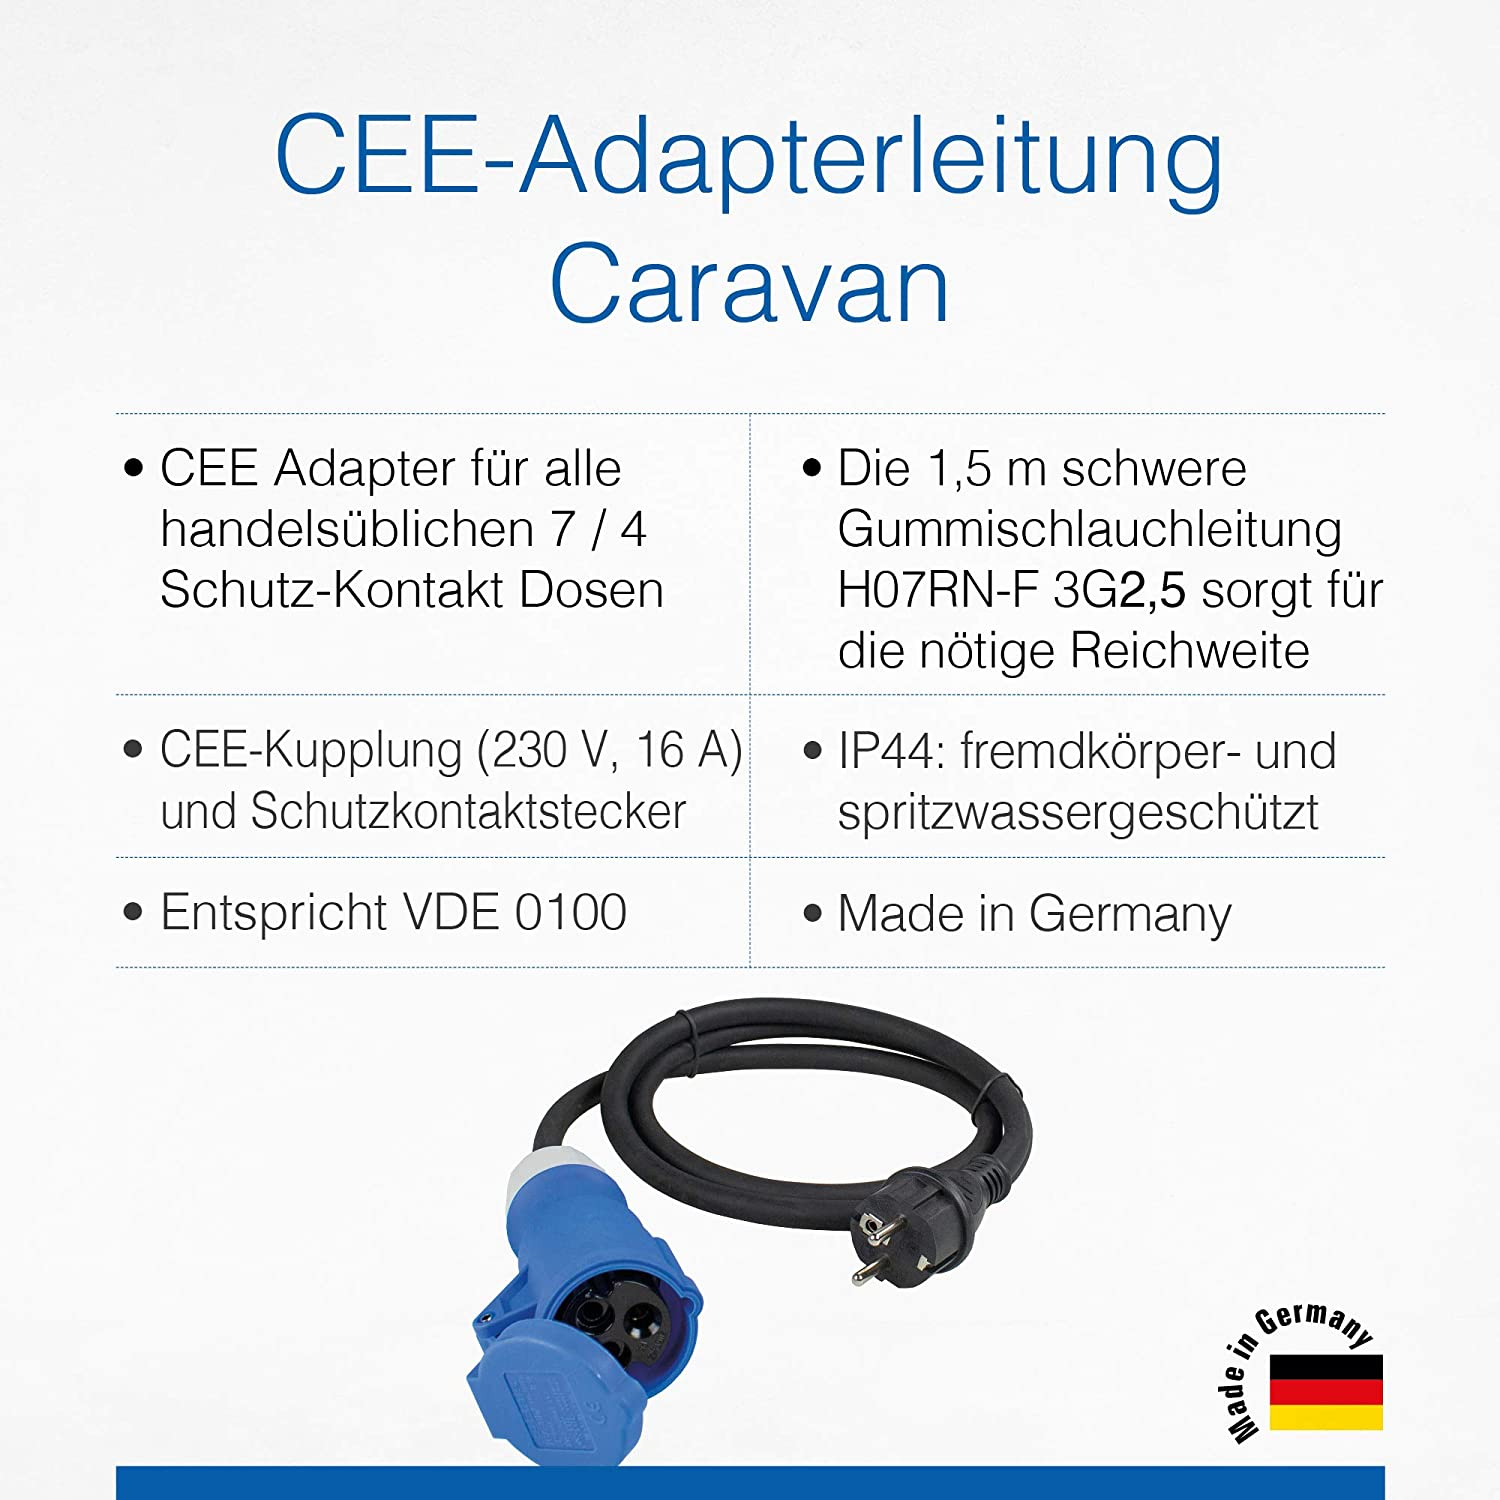 As Schwabe Cee Adapter Cable Caravan 230 V 16 A Cee Coupling Safety Plug With Protective Cap 3 Pole Cable For European Schuko Socket Ip44 Made In Germany Black I 60486 Baumarkt